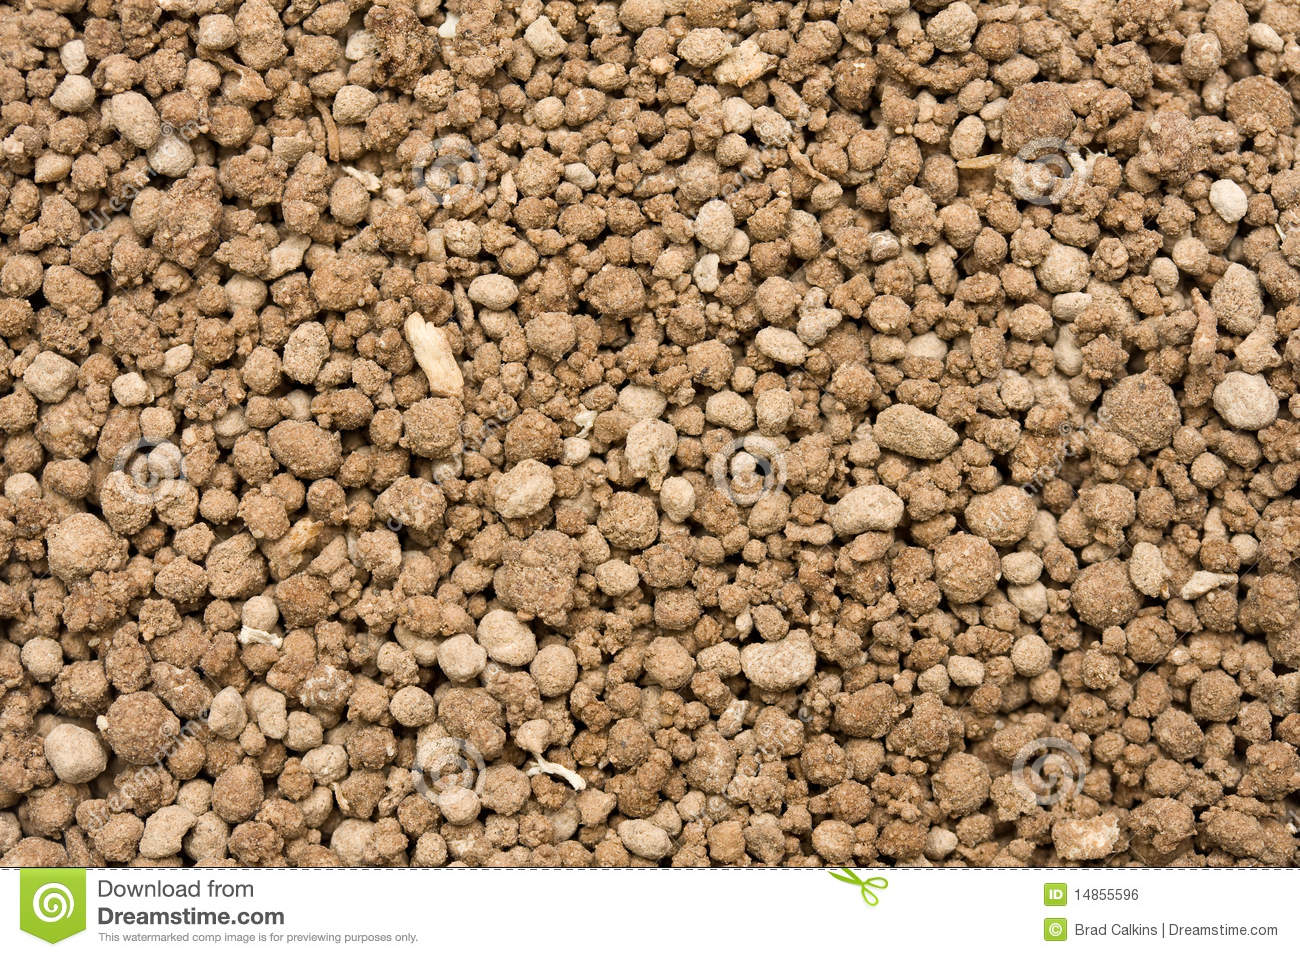 Bone Meal Production In Nigeria; The Feasibility Report.